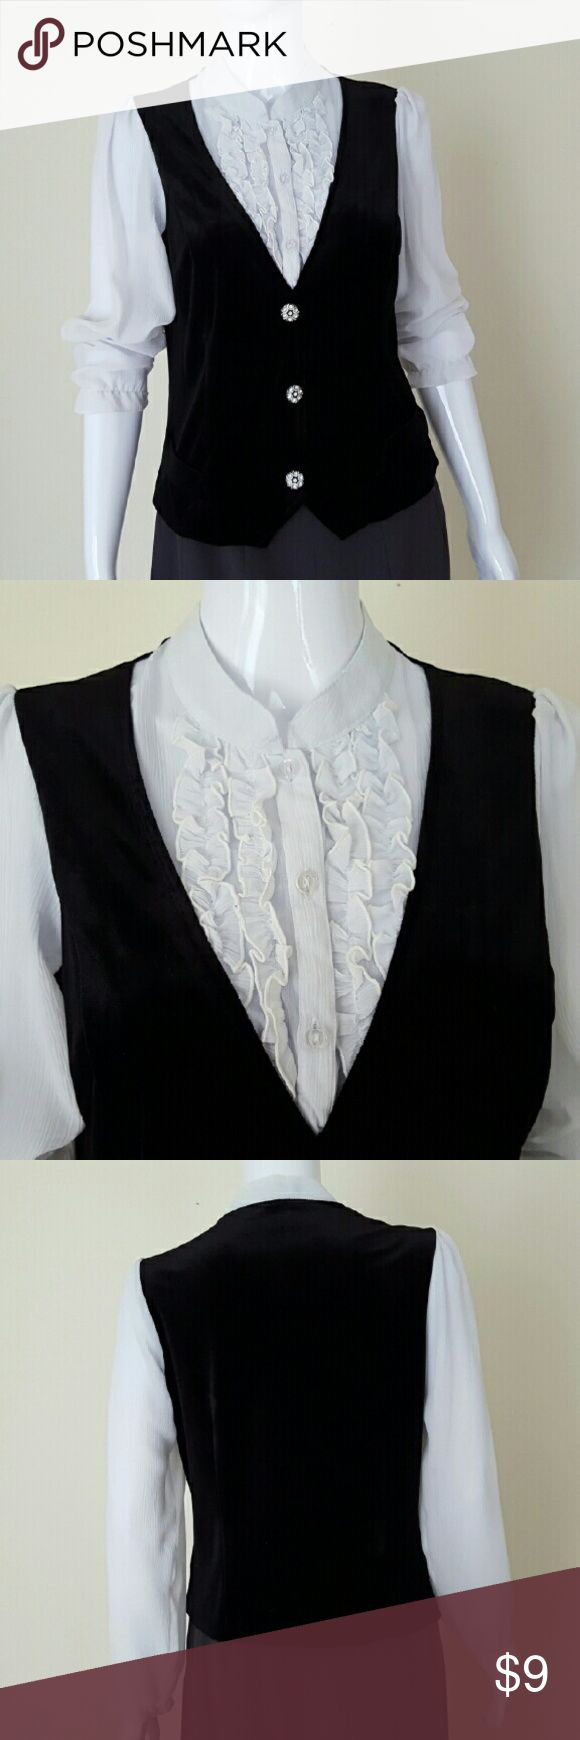 """Black and White Blouse The nicest features of this blouse include black """"vest"""" and ruffled front deco. It is ideal for both work and party. The black vest like body is velvet. The white part is lightweight. Body: 90%polyester, 10%spandex. Combo: 100% polyester. Excellent condition. Notations Tops Blouses"""